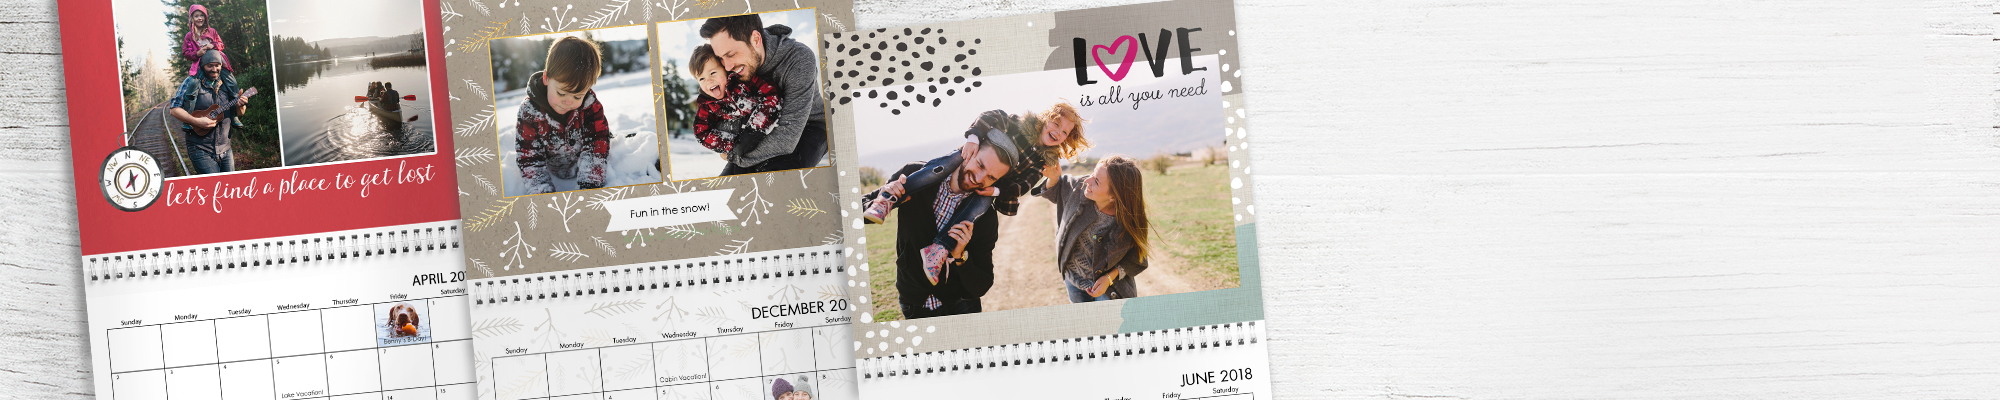 2017 Photo Calendars It's never too late to create a personalized calendar for 2017 and prepare for 2018.